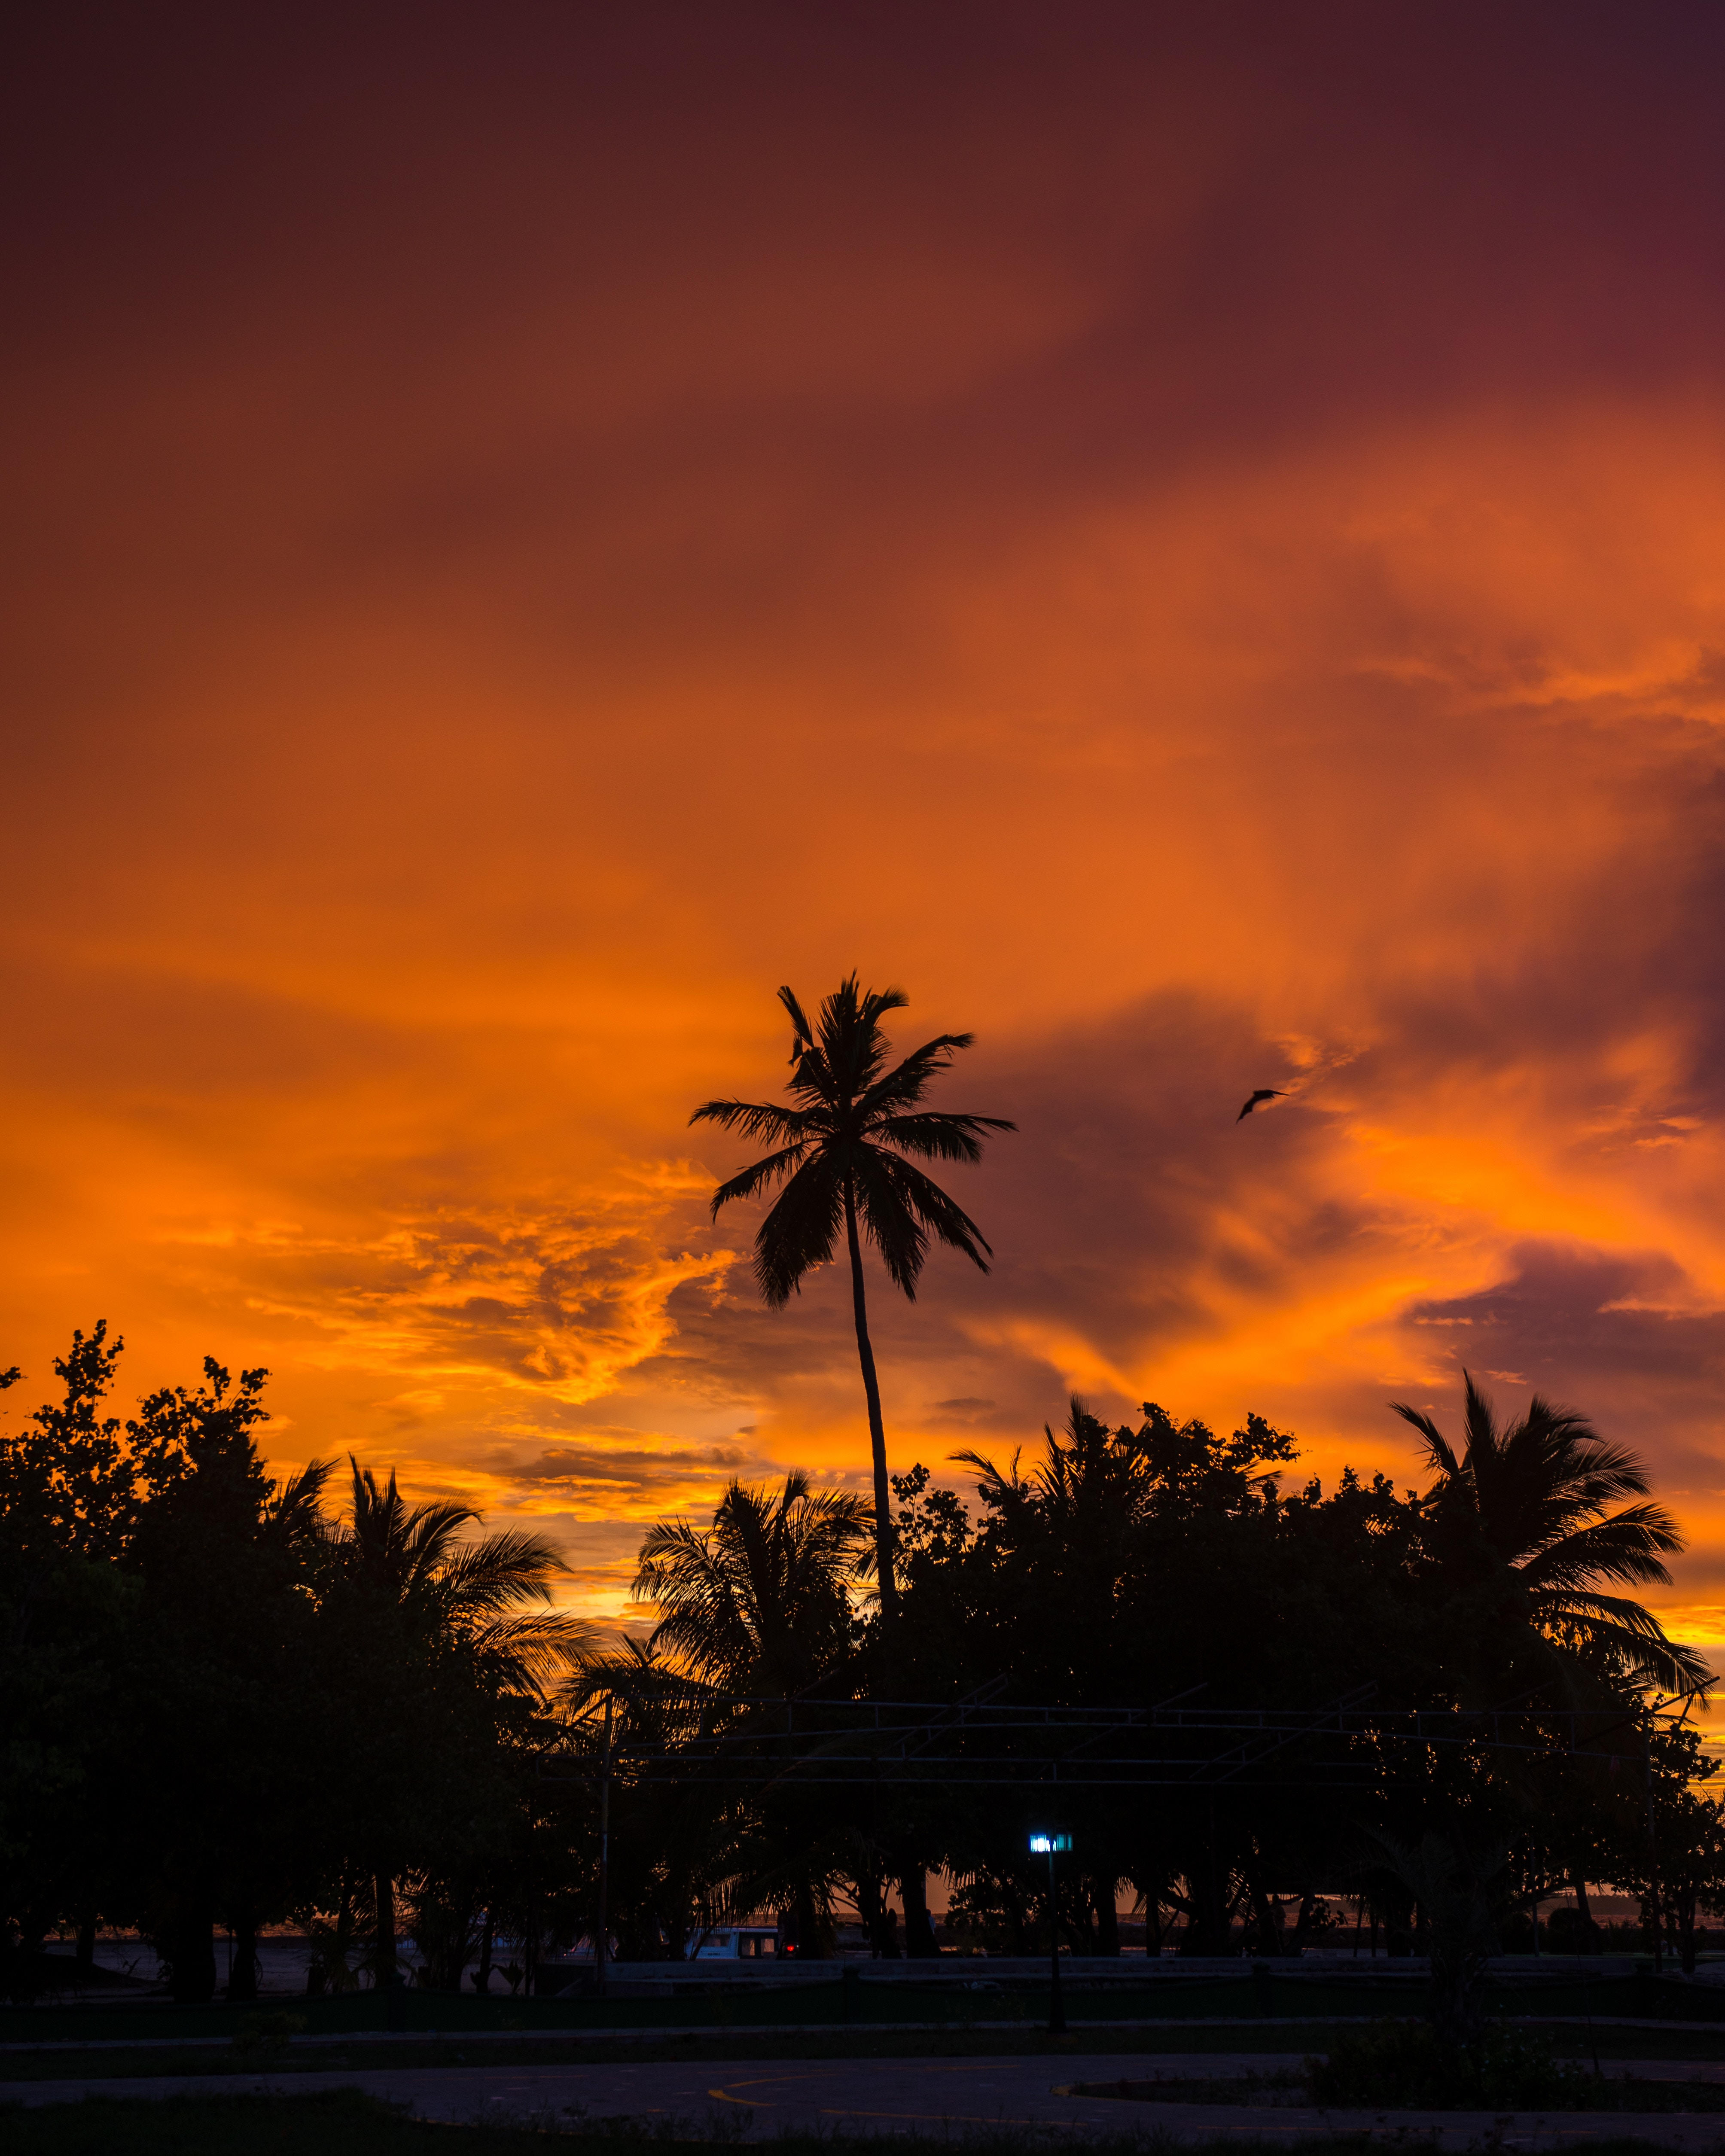 105061 download wallpaper Nature, Sunset, Sky, Clouds, Palms, Tropics screensavers and pictures for free